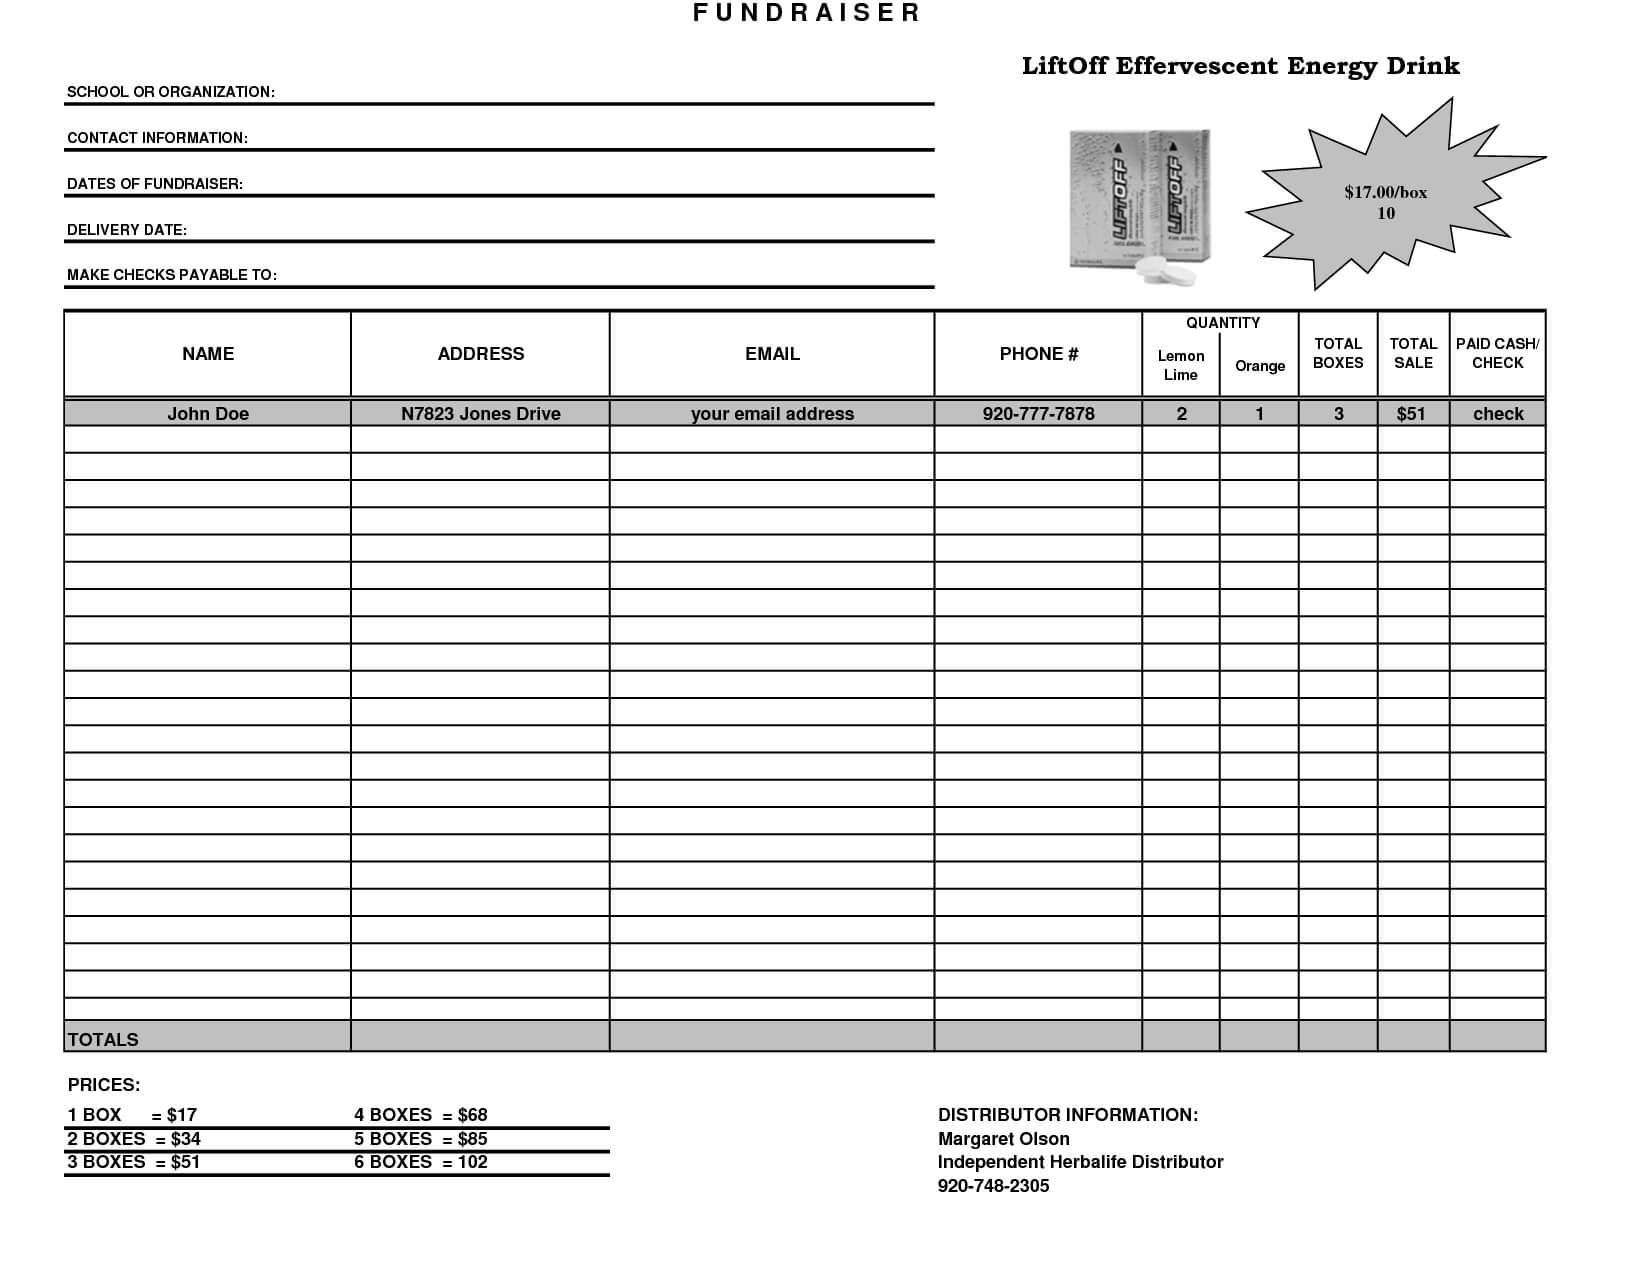 Fundraiser Template Excel Fundraiser Order Form Template Throughout Fundraising Report Template